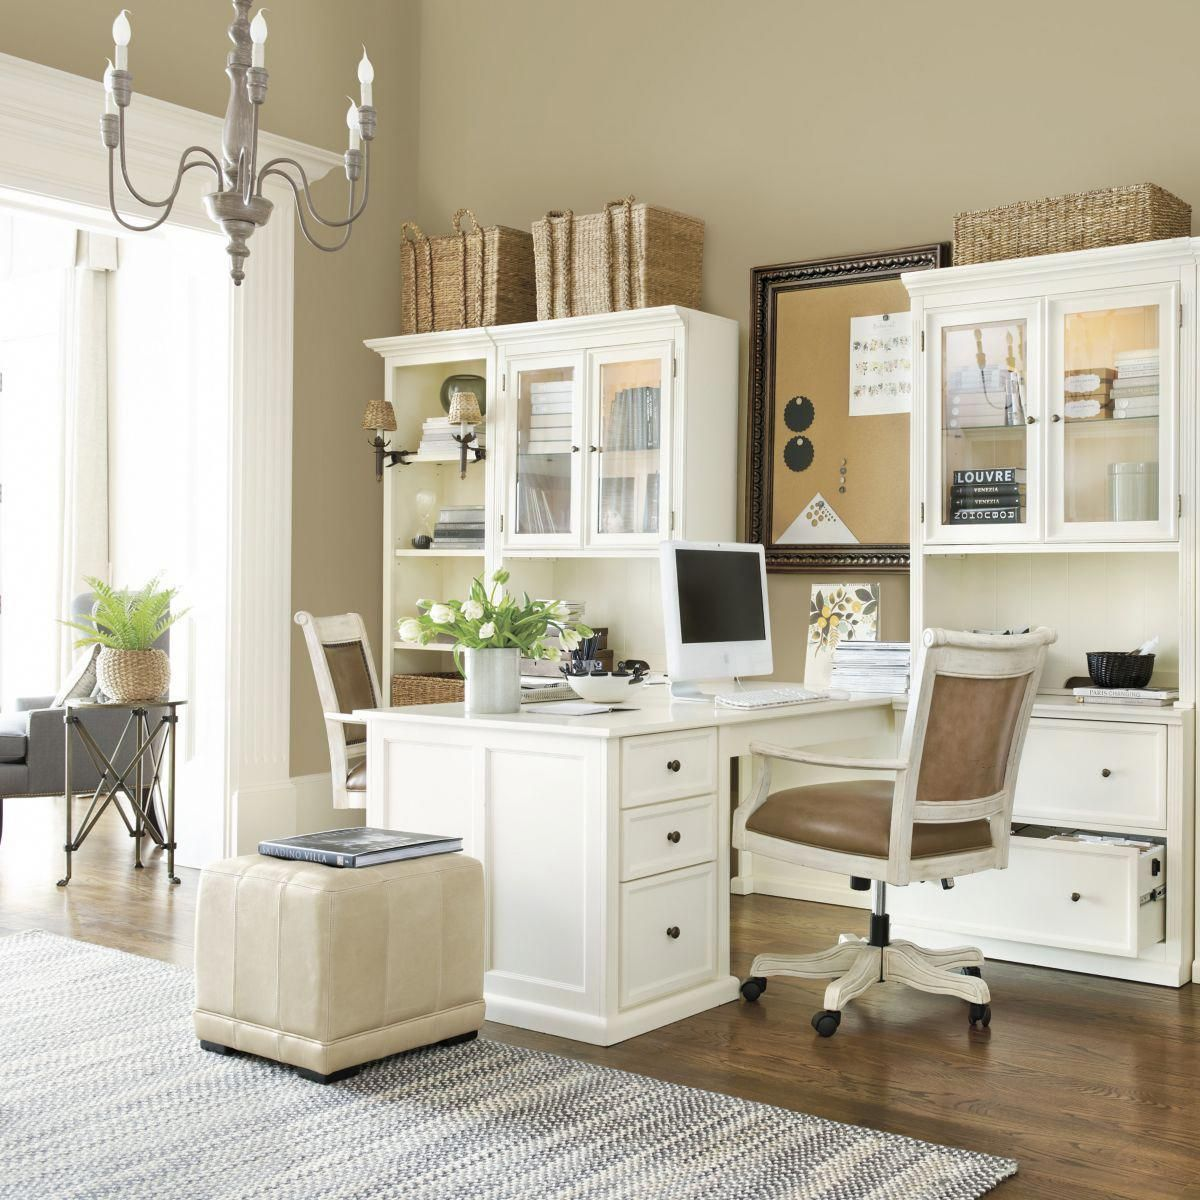 White airy home office Mid Century White And Airy Home Office Like The Way The Desks Bump Out So People Can Work In Small Space tuscanyhomedecoratingideas Pinterest White And Airy Home Office Like The Way The Desks Bump Out So